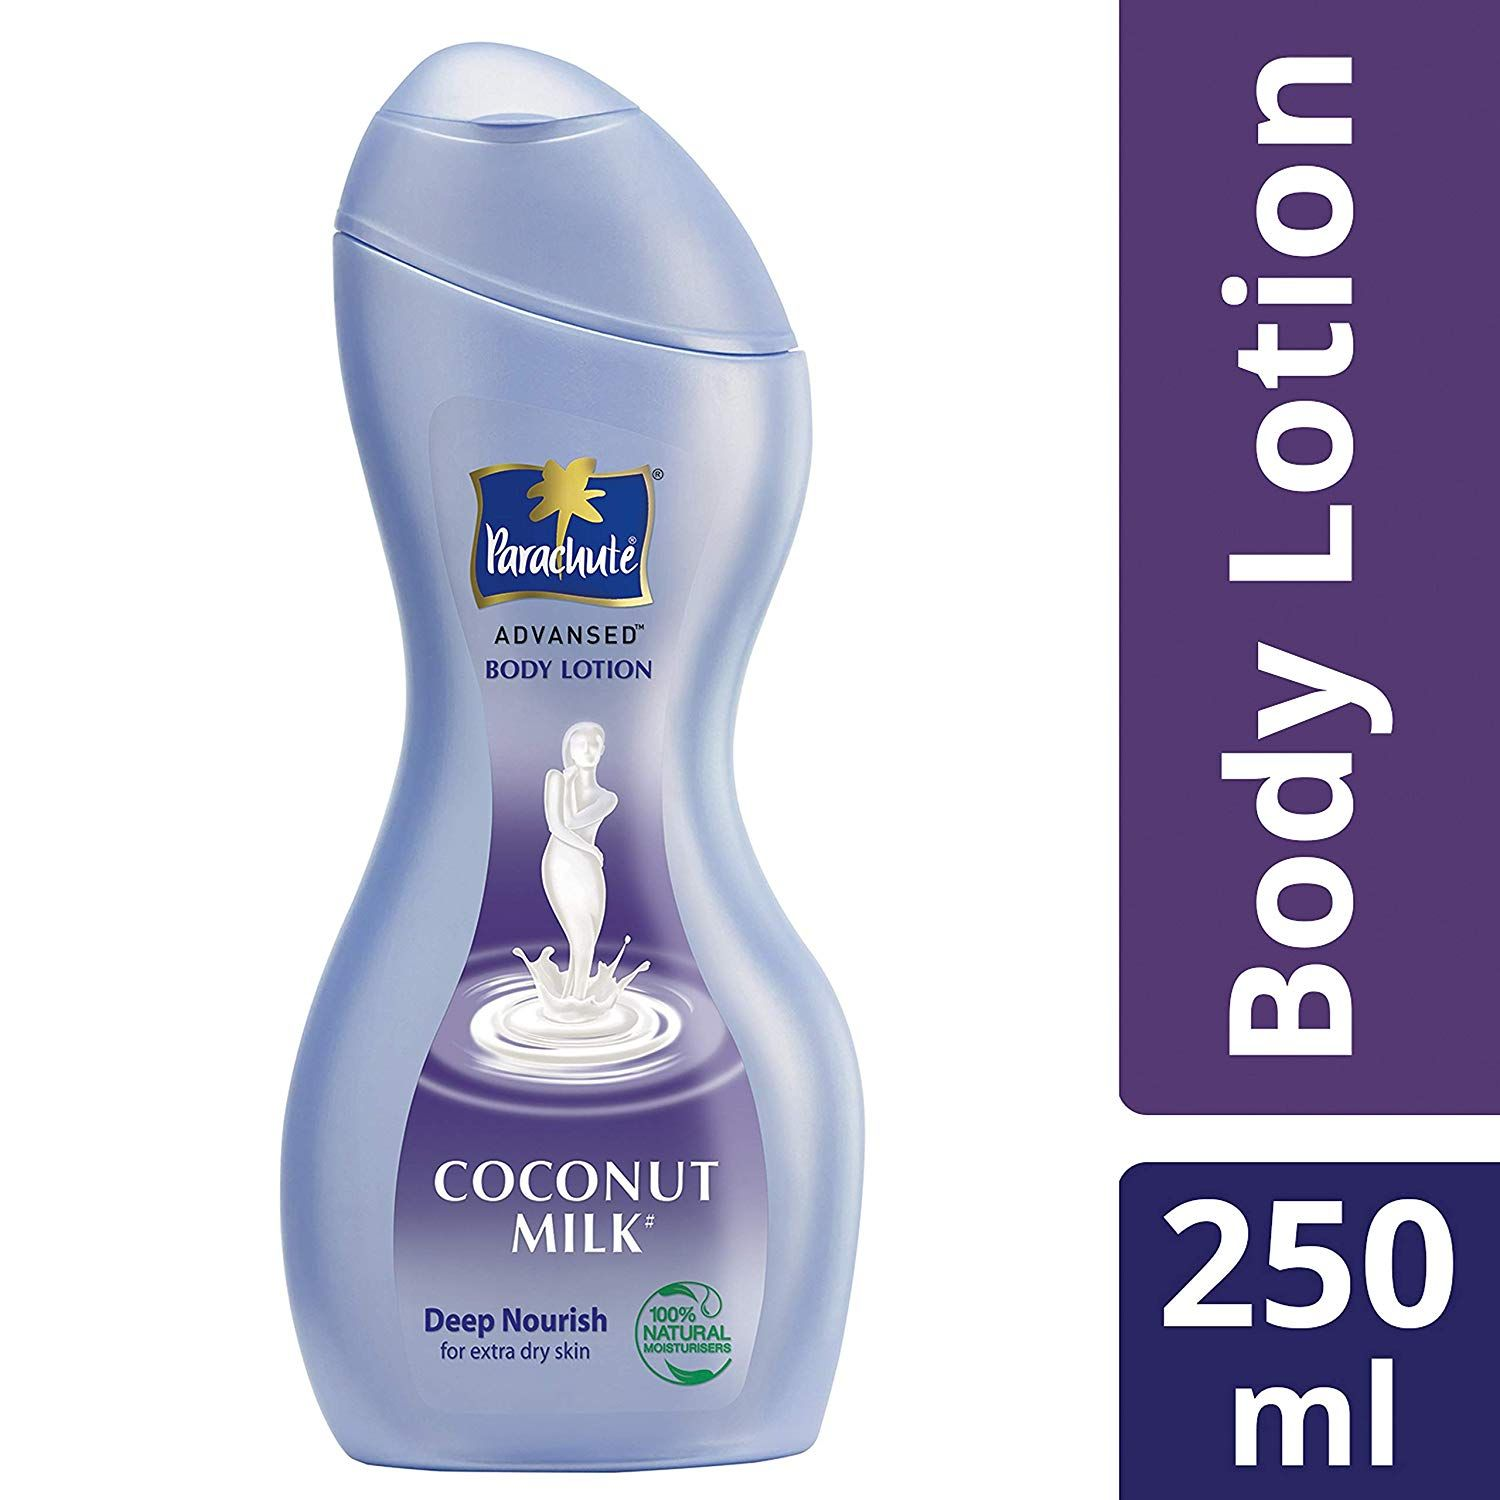 Flat 50% Off:- Parachute Advansed Deep Nourish Body Lotion, 250 ml